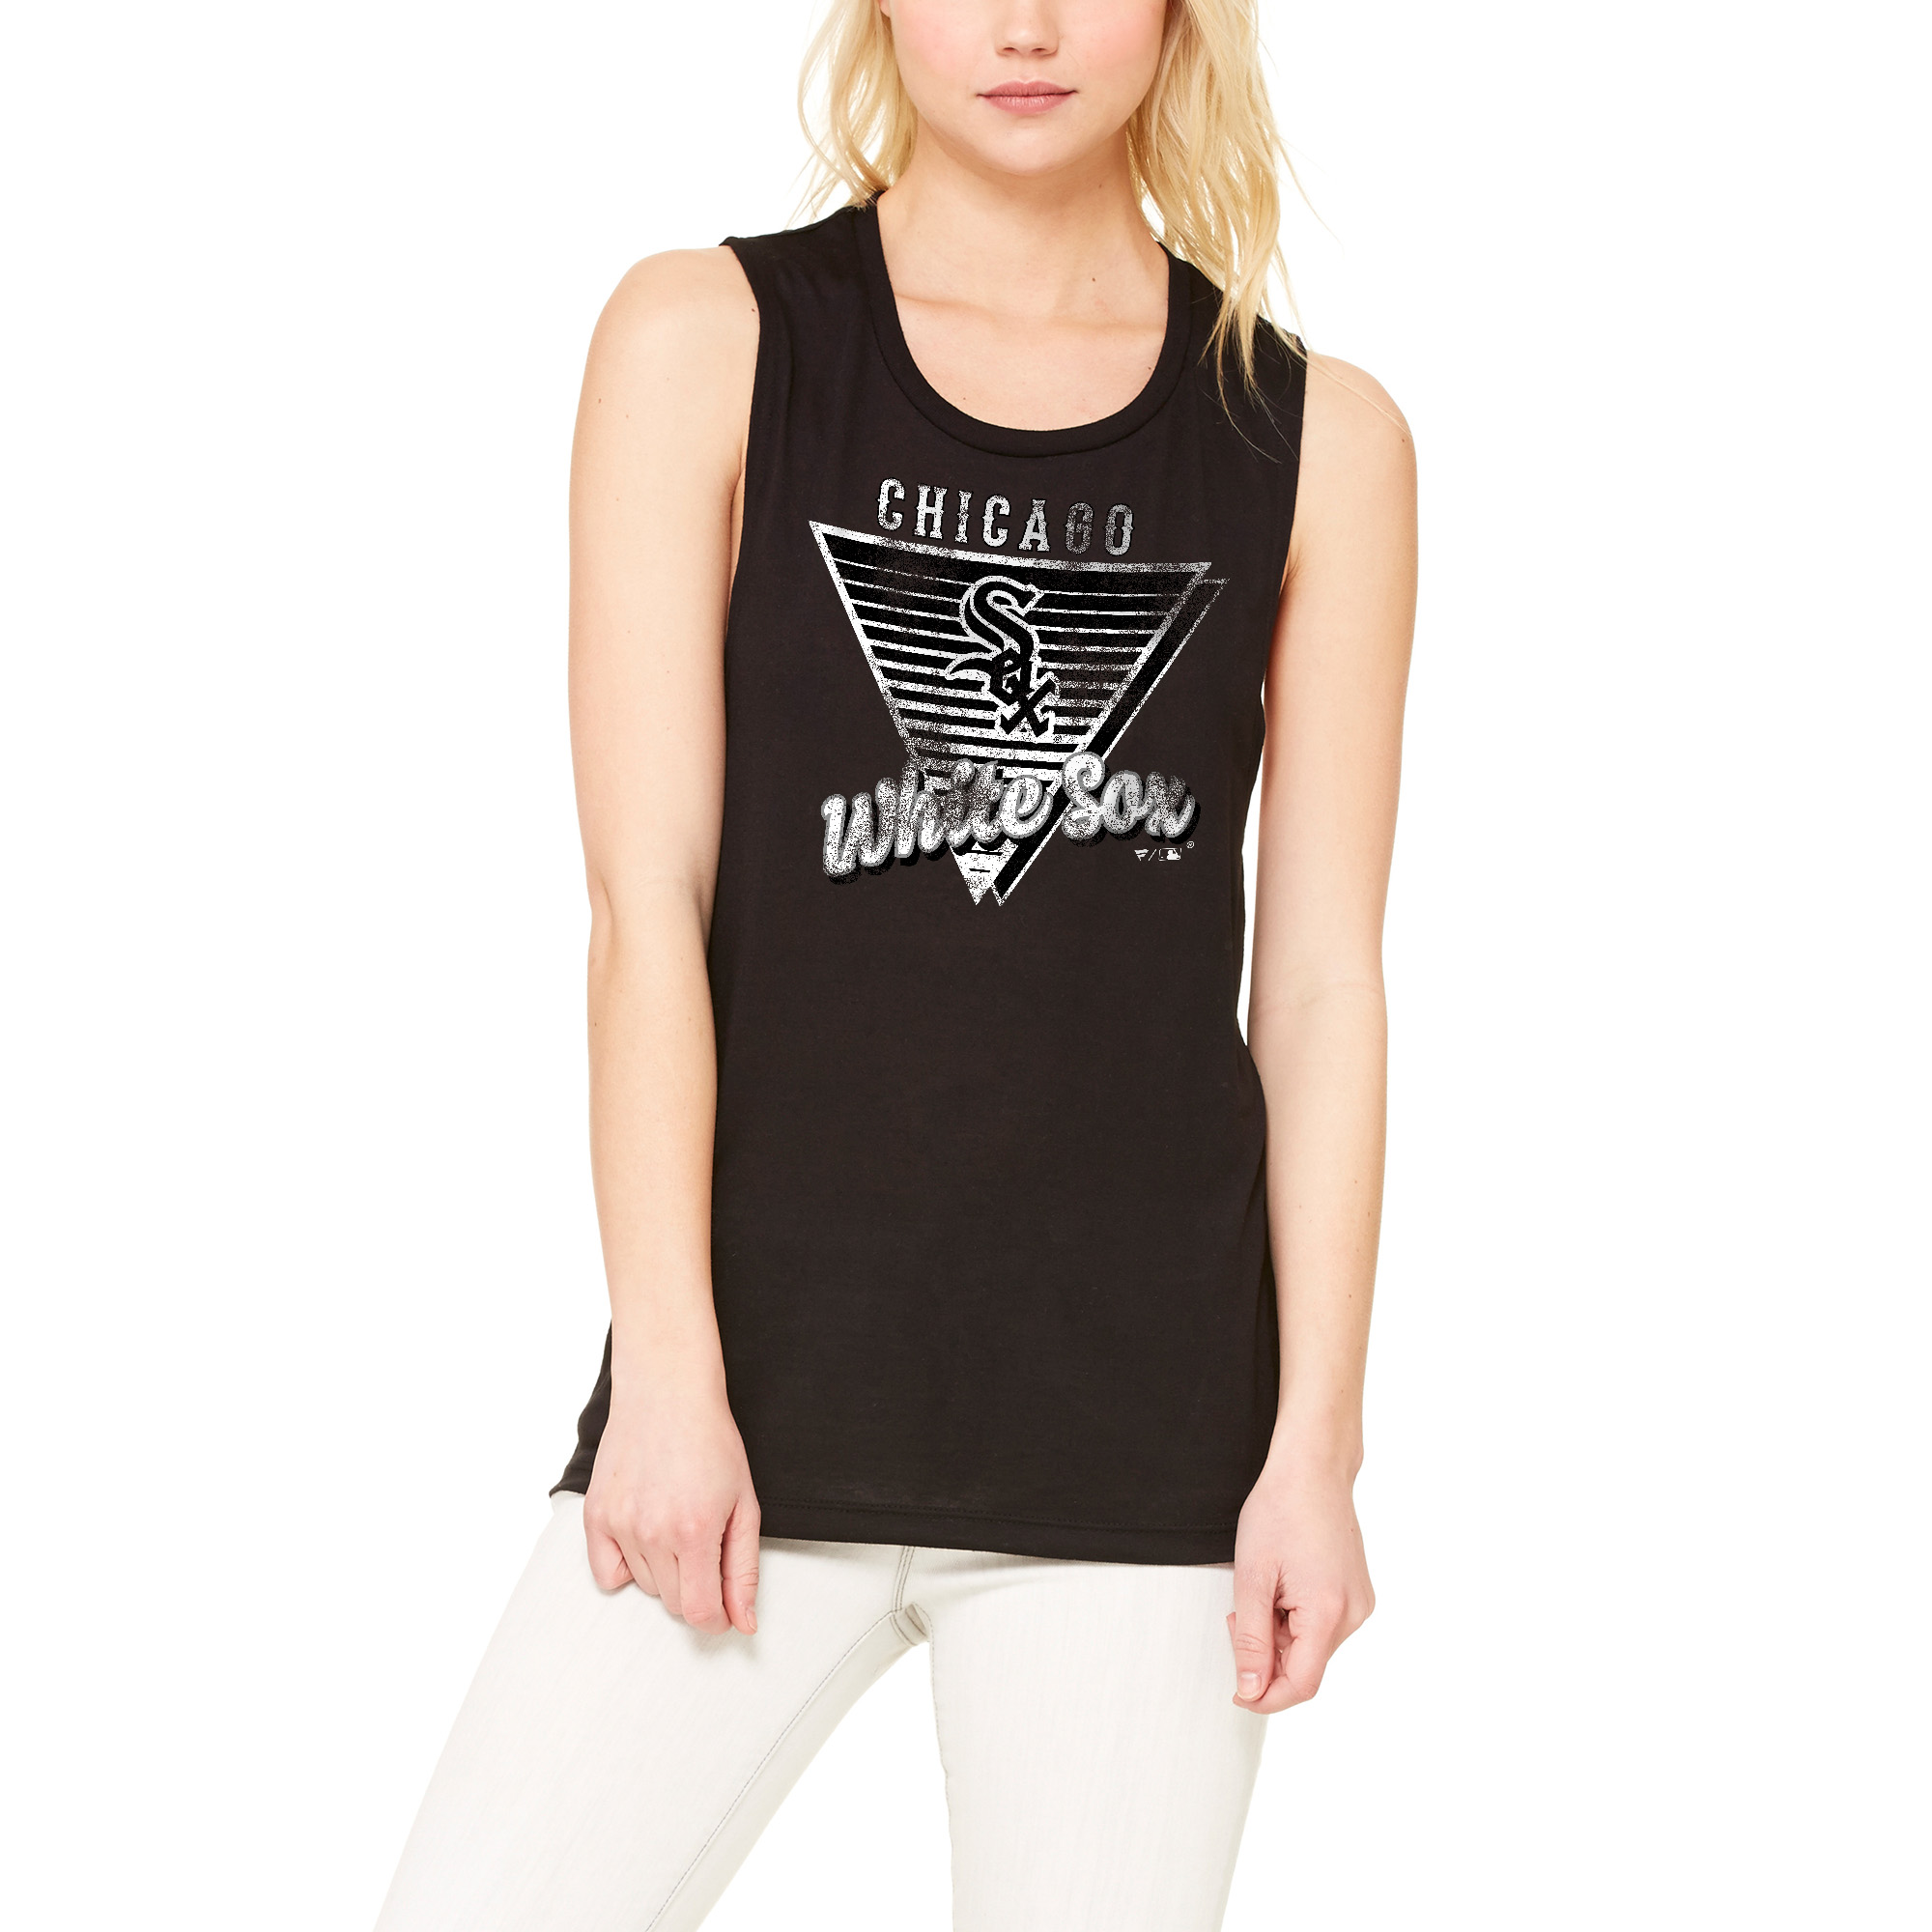 Chicago White Sox Let Loose by RNL Women's Eighty Something Muscle Tank Top - Black